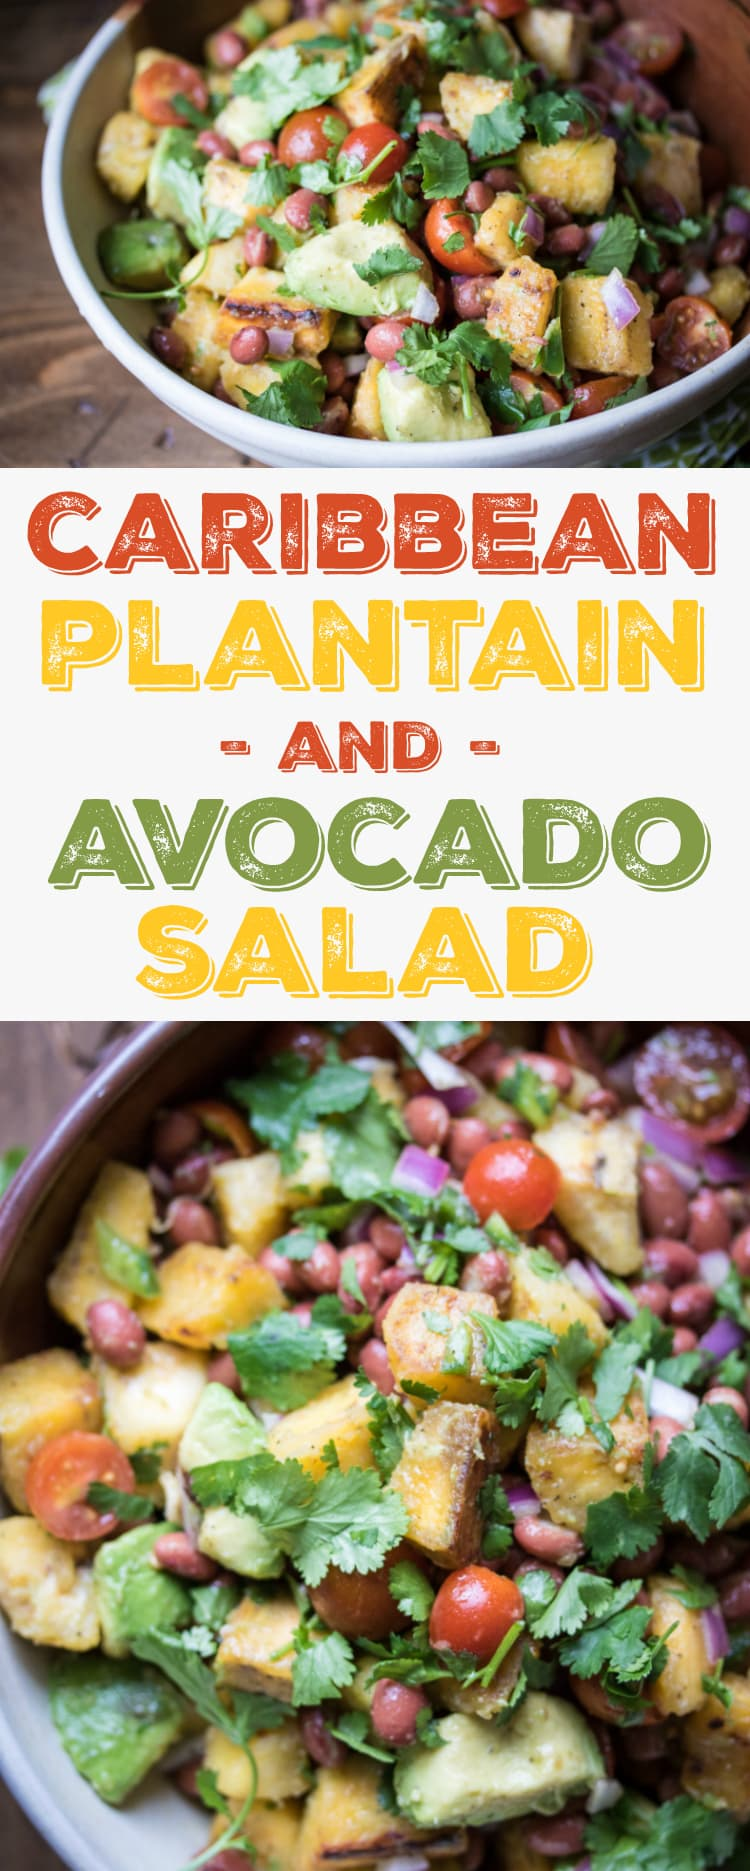 Caribbean Plantain & Avocado Salad - a vacation in a bowl!